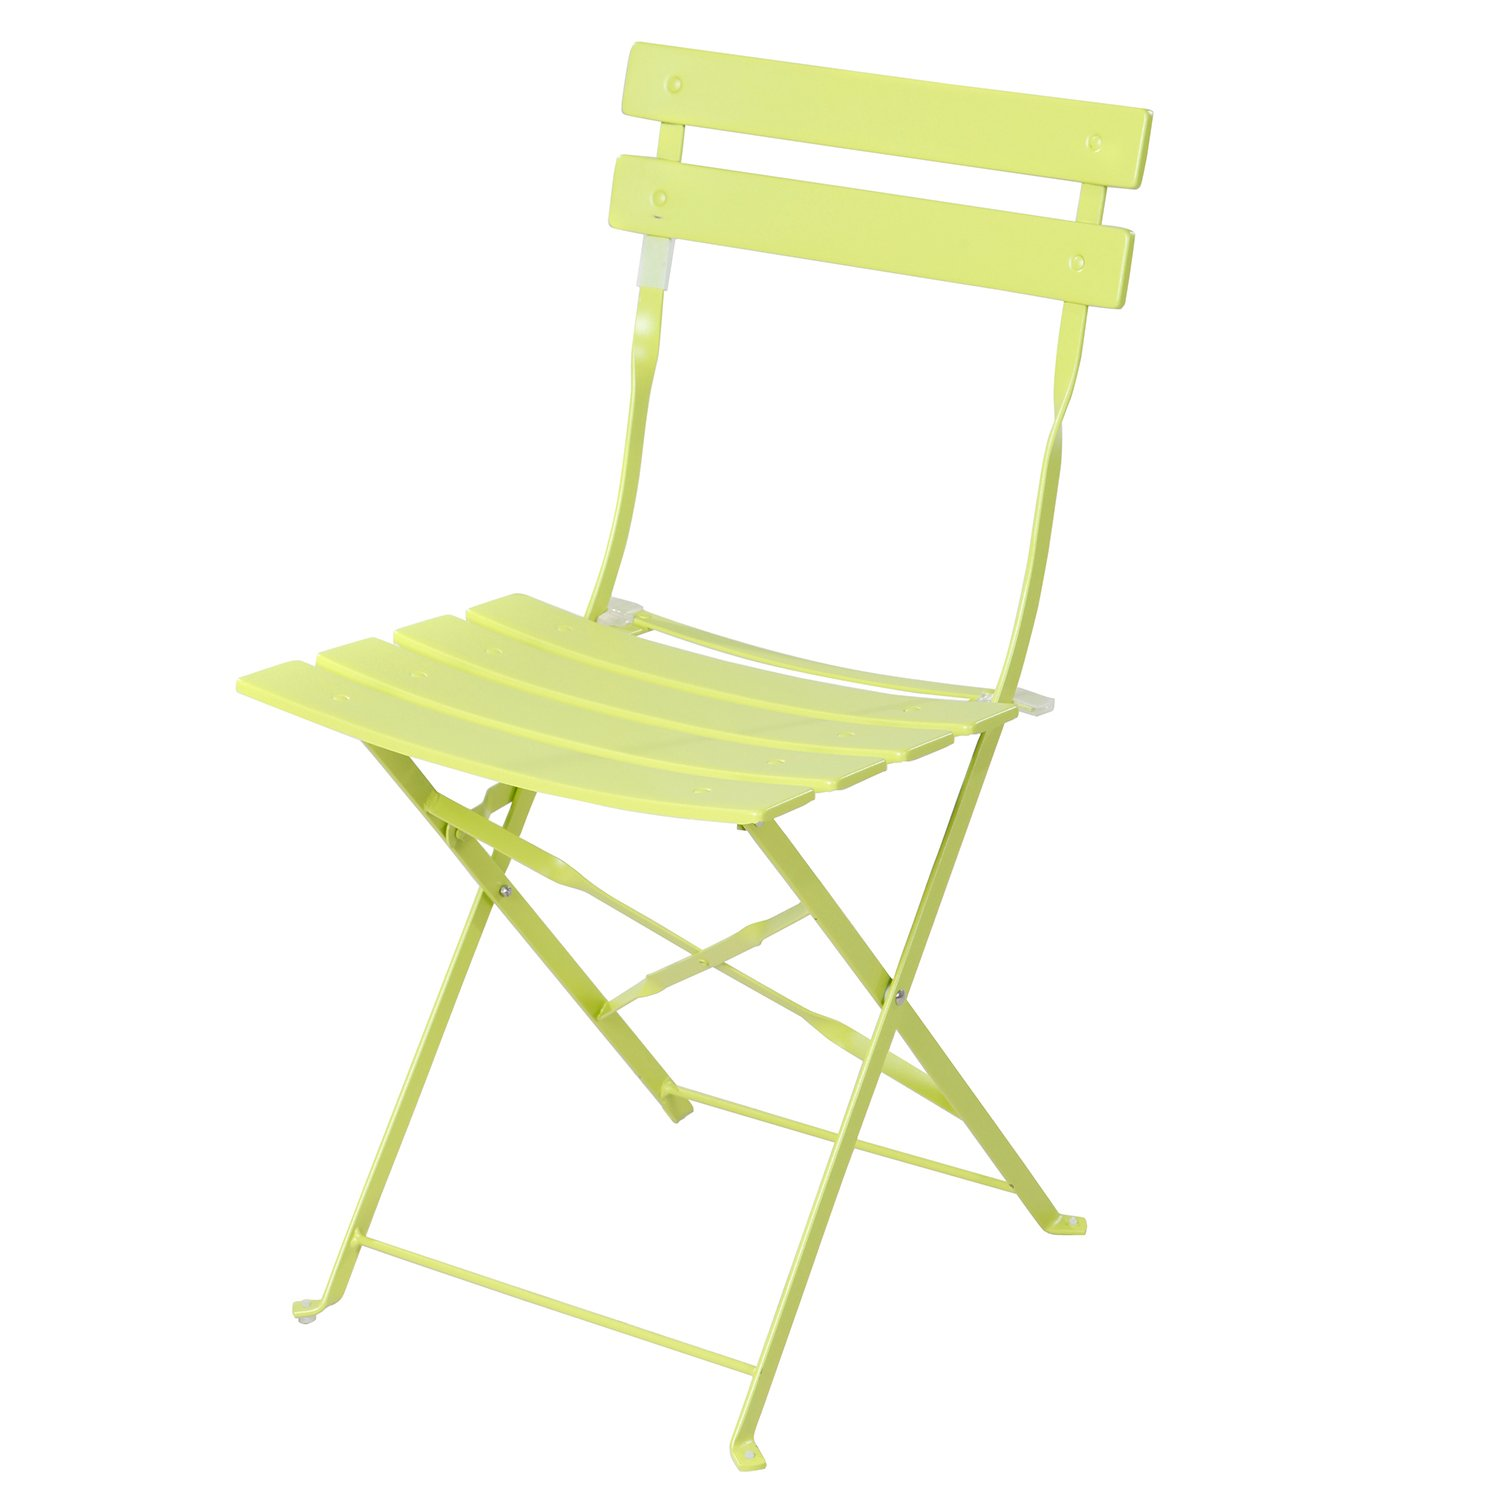 Grand patio 3-Pack Sling Glider Folding Steel 2 Chairs Round Table Indoor Corner Sets,Vivid Green by Grand patio (Image #4)